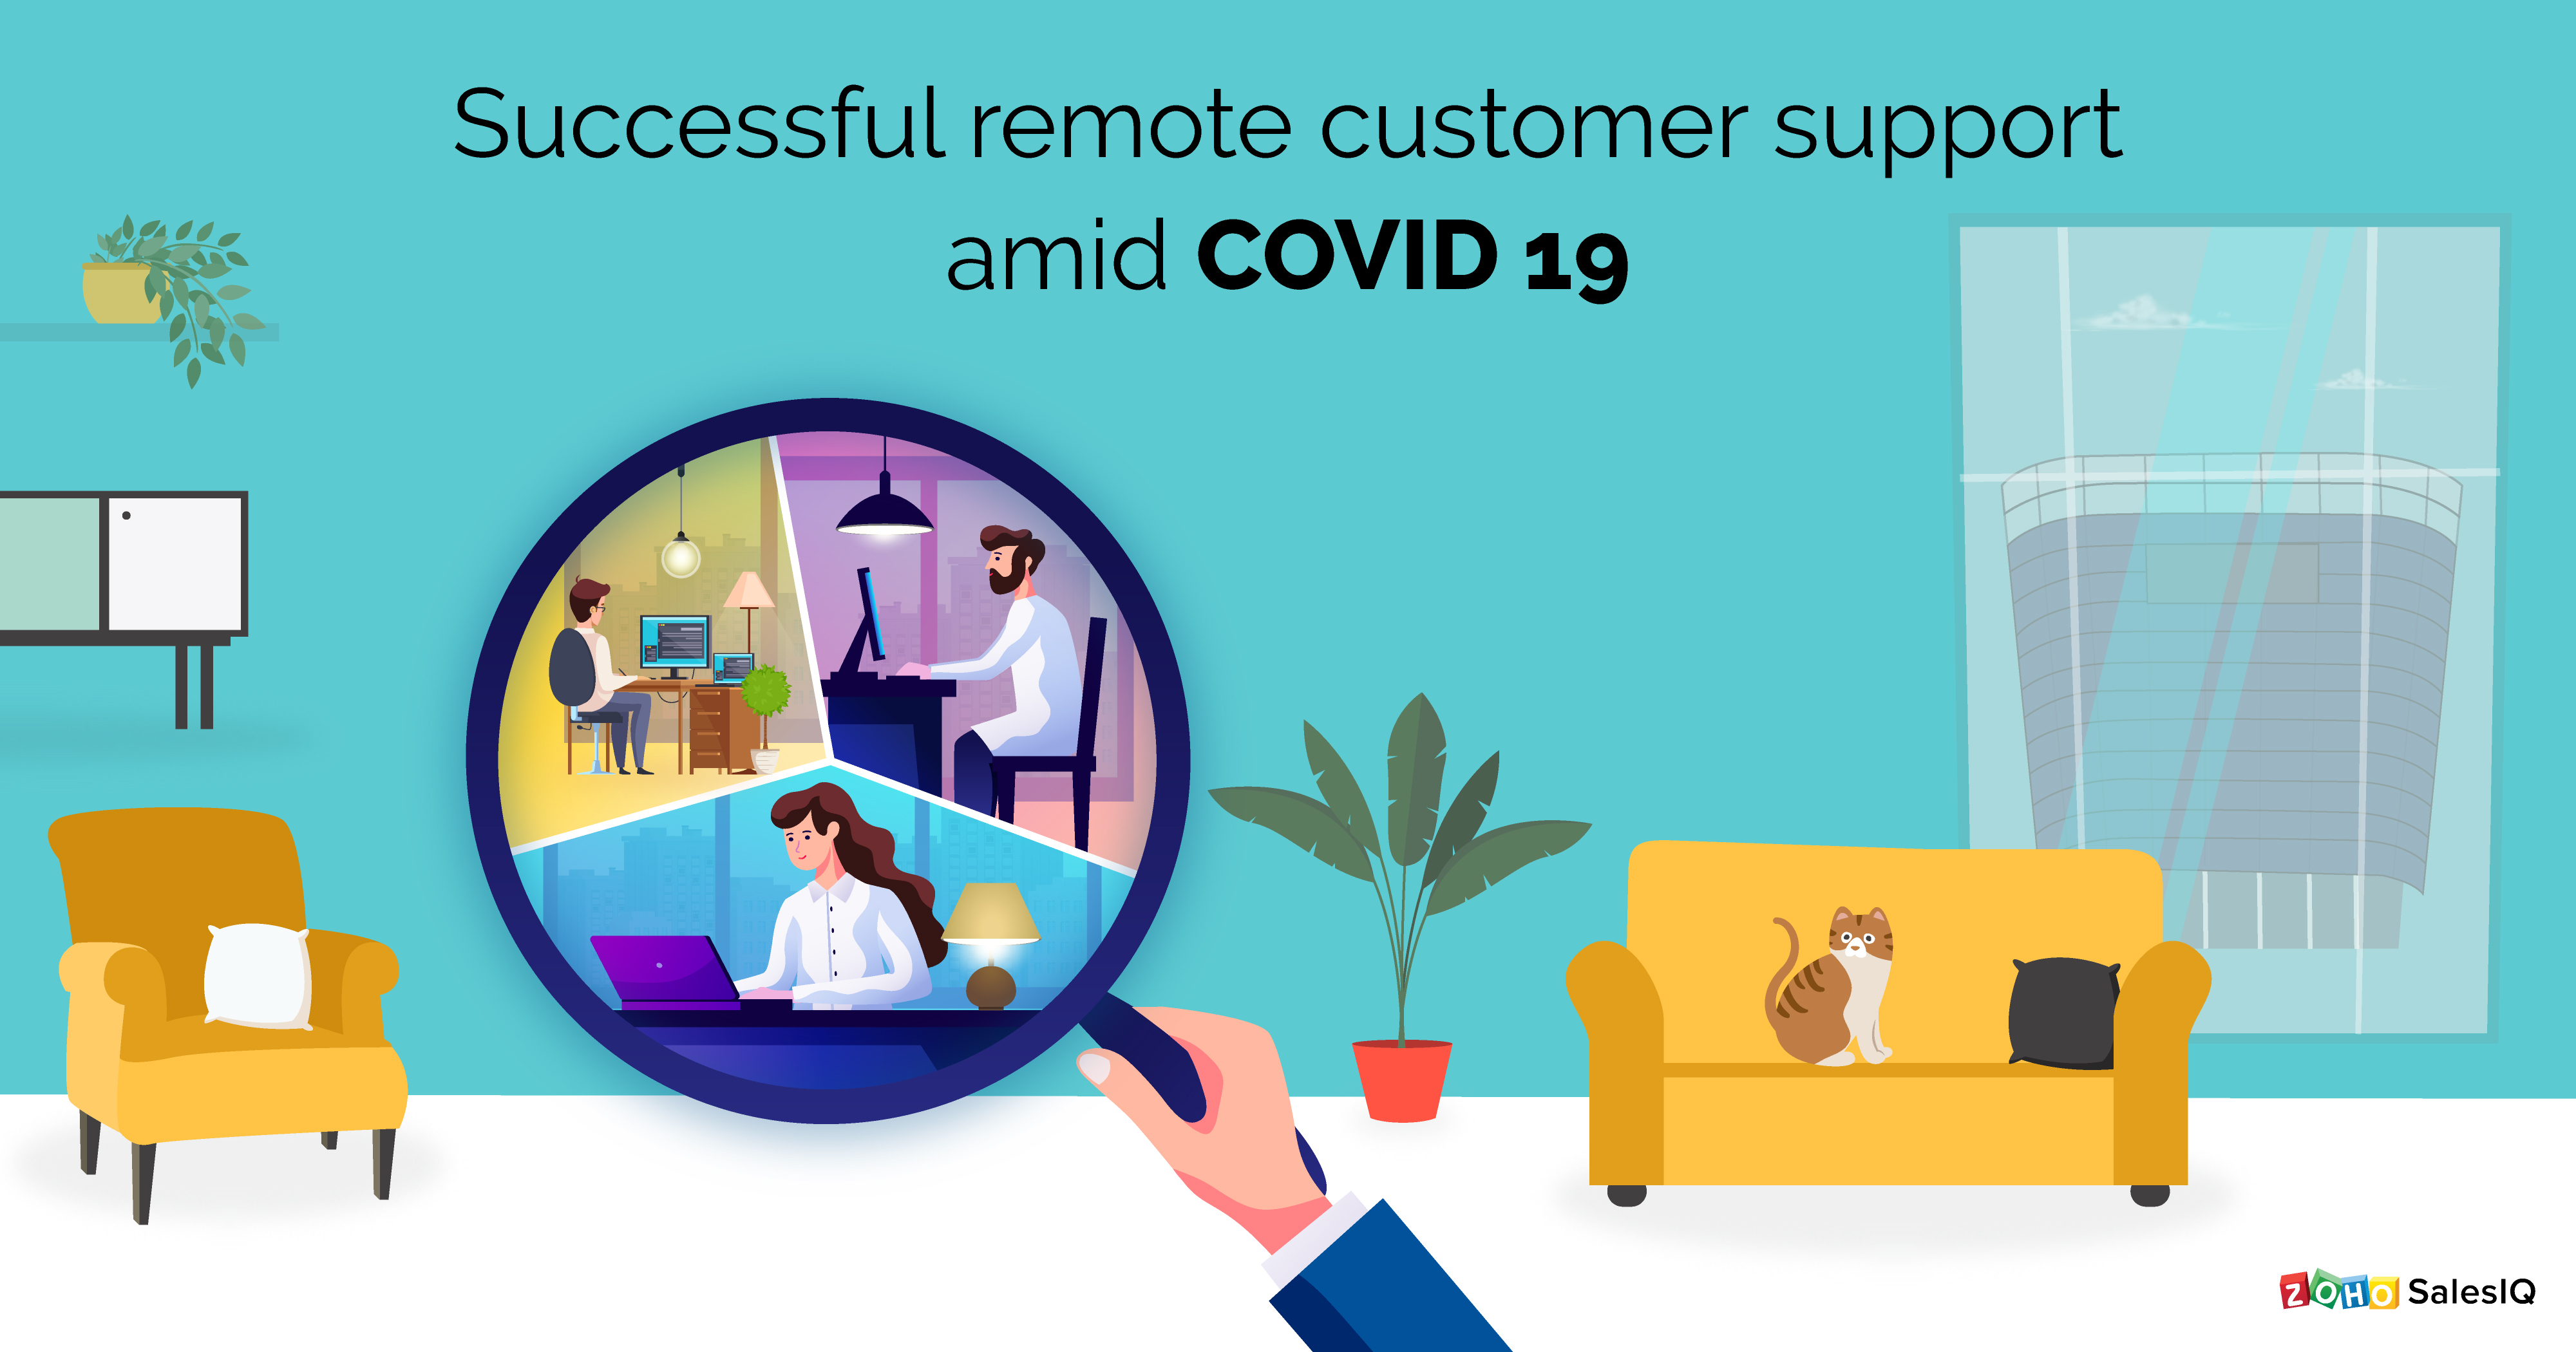 Customer service amid COVID 19: A guide to managing remote customer support teams